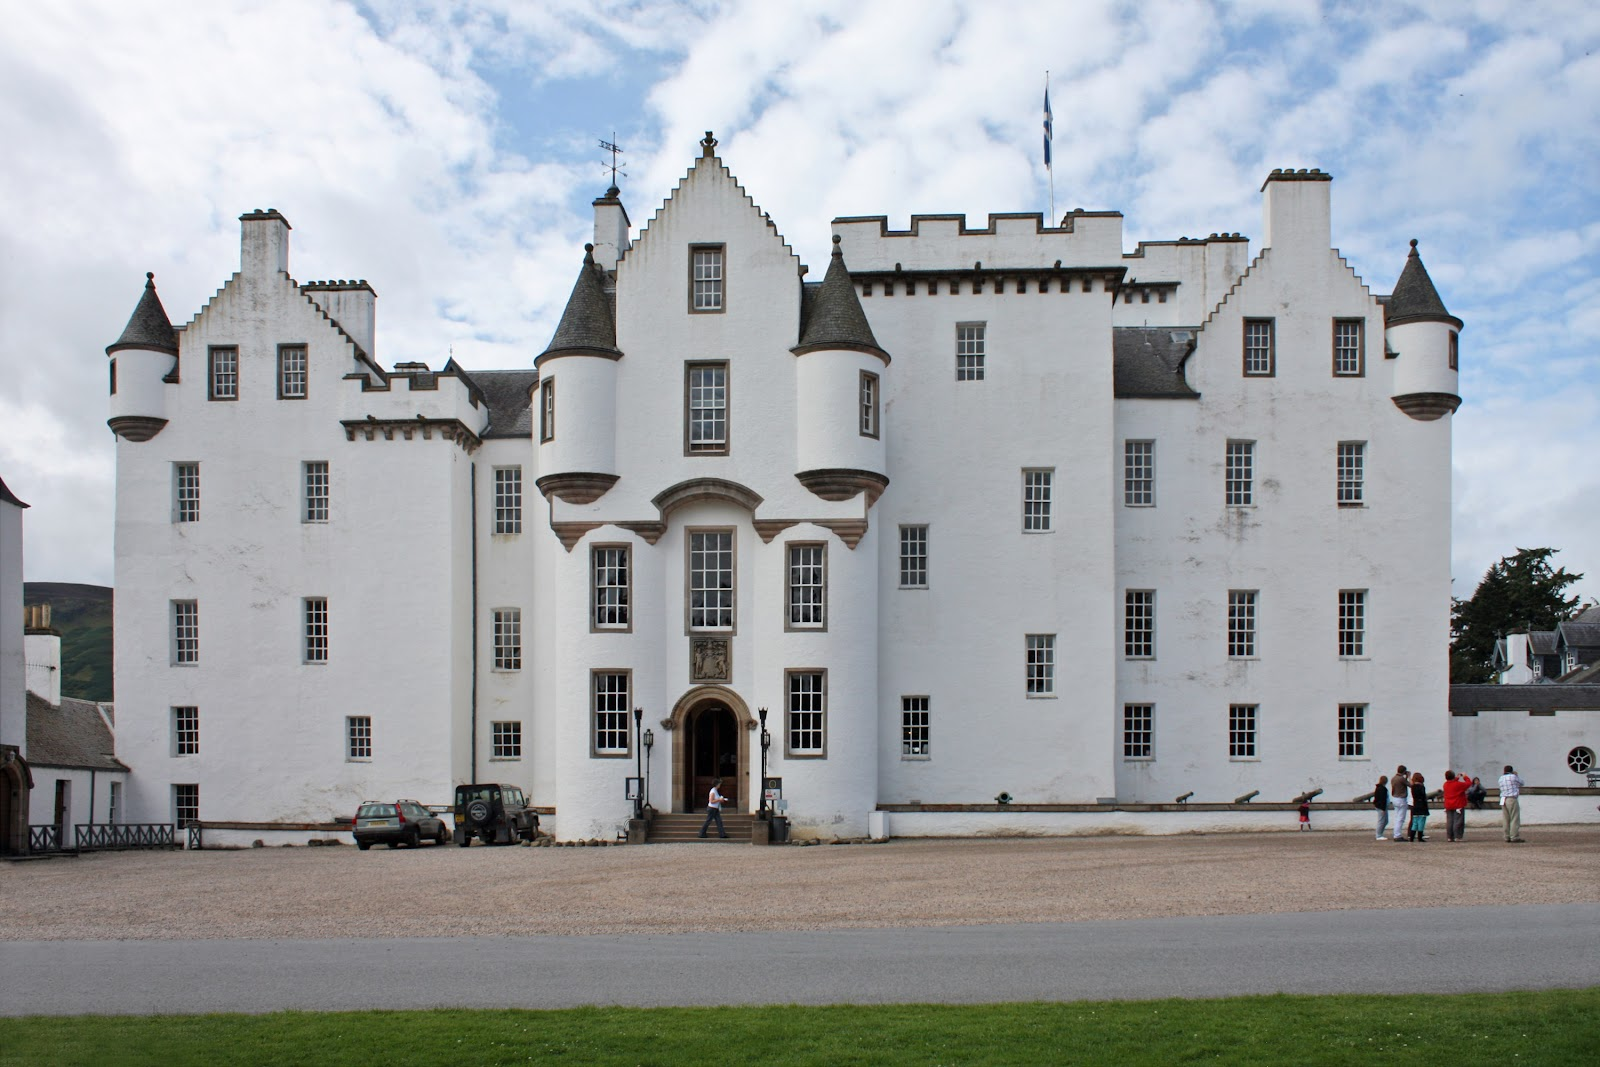 blair castle frontal view, symmetrical photo from across the castle shows its white walls, windows. cloudy day in great britain.